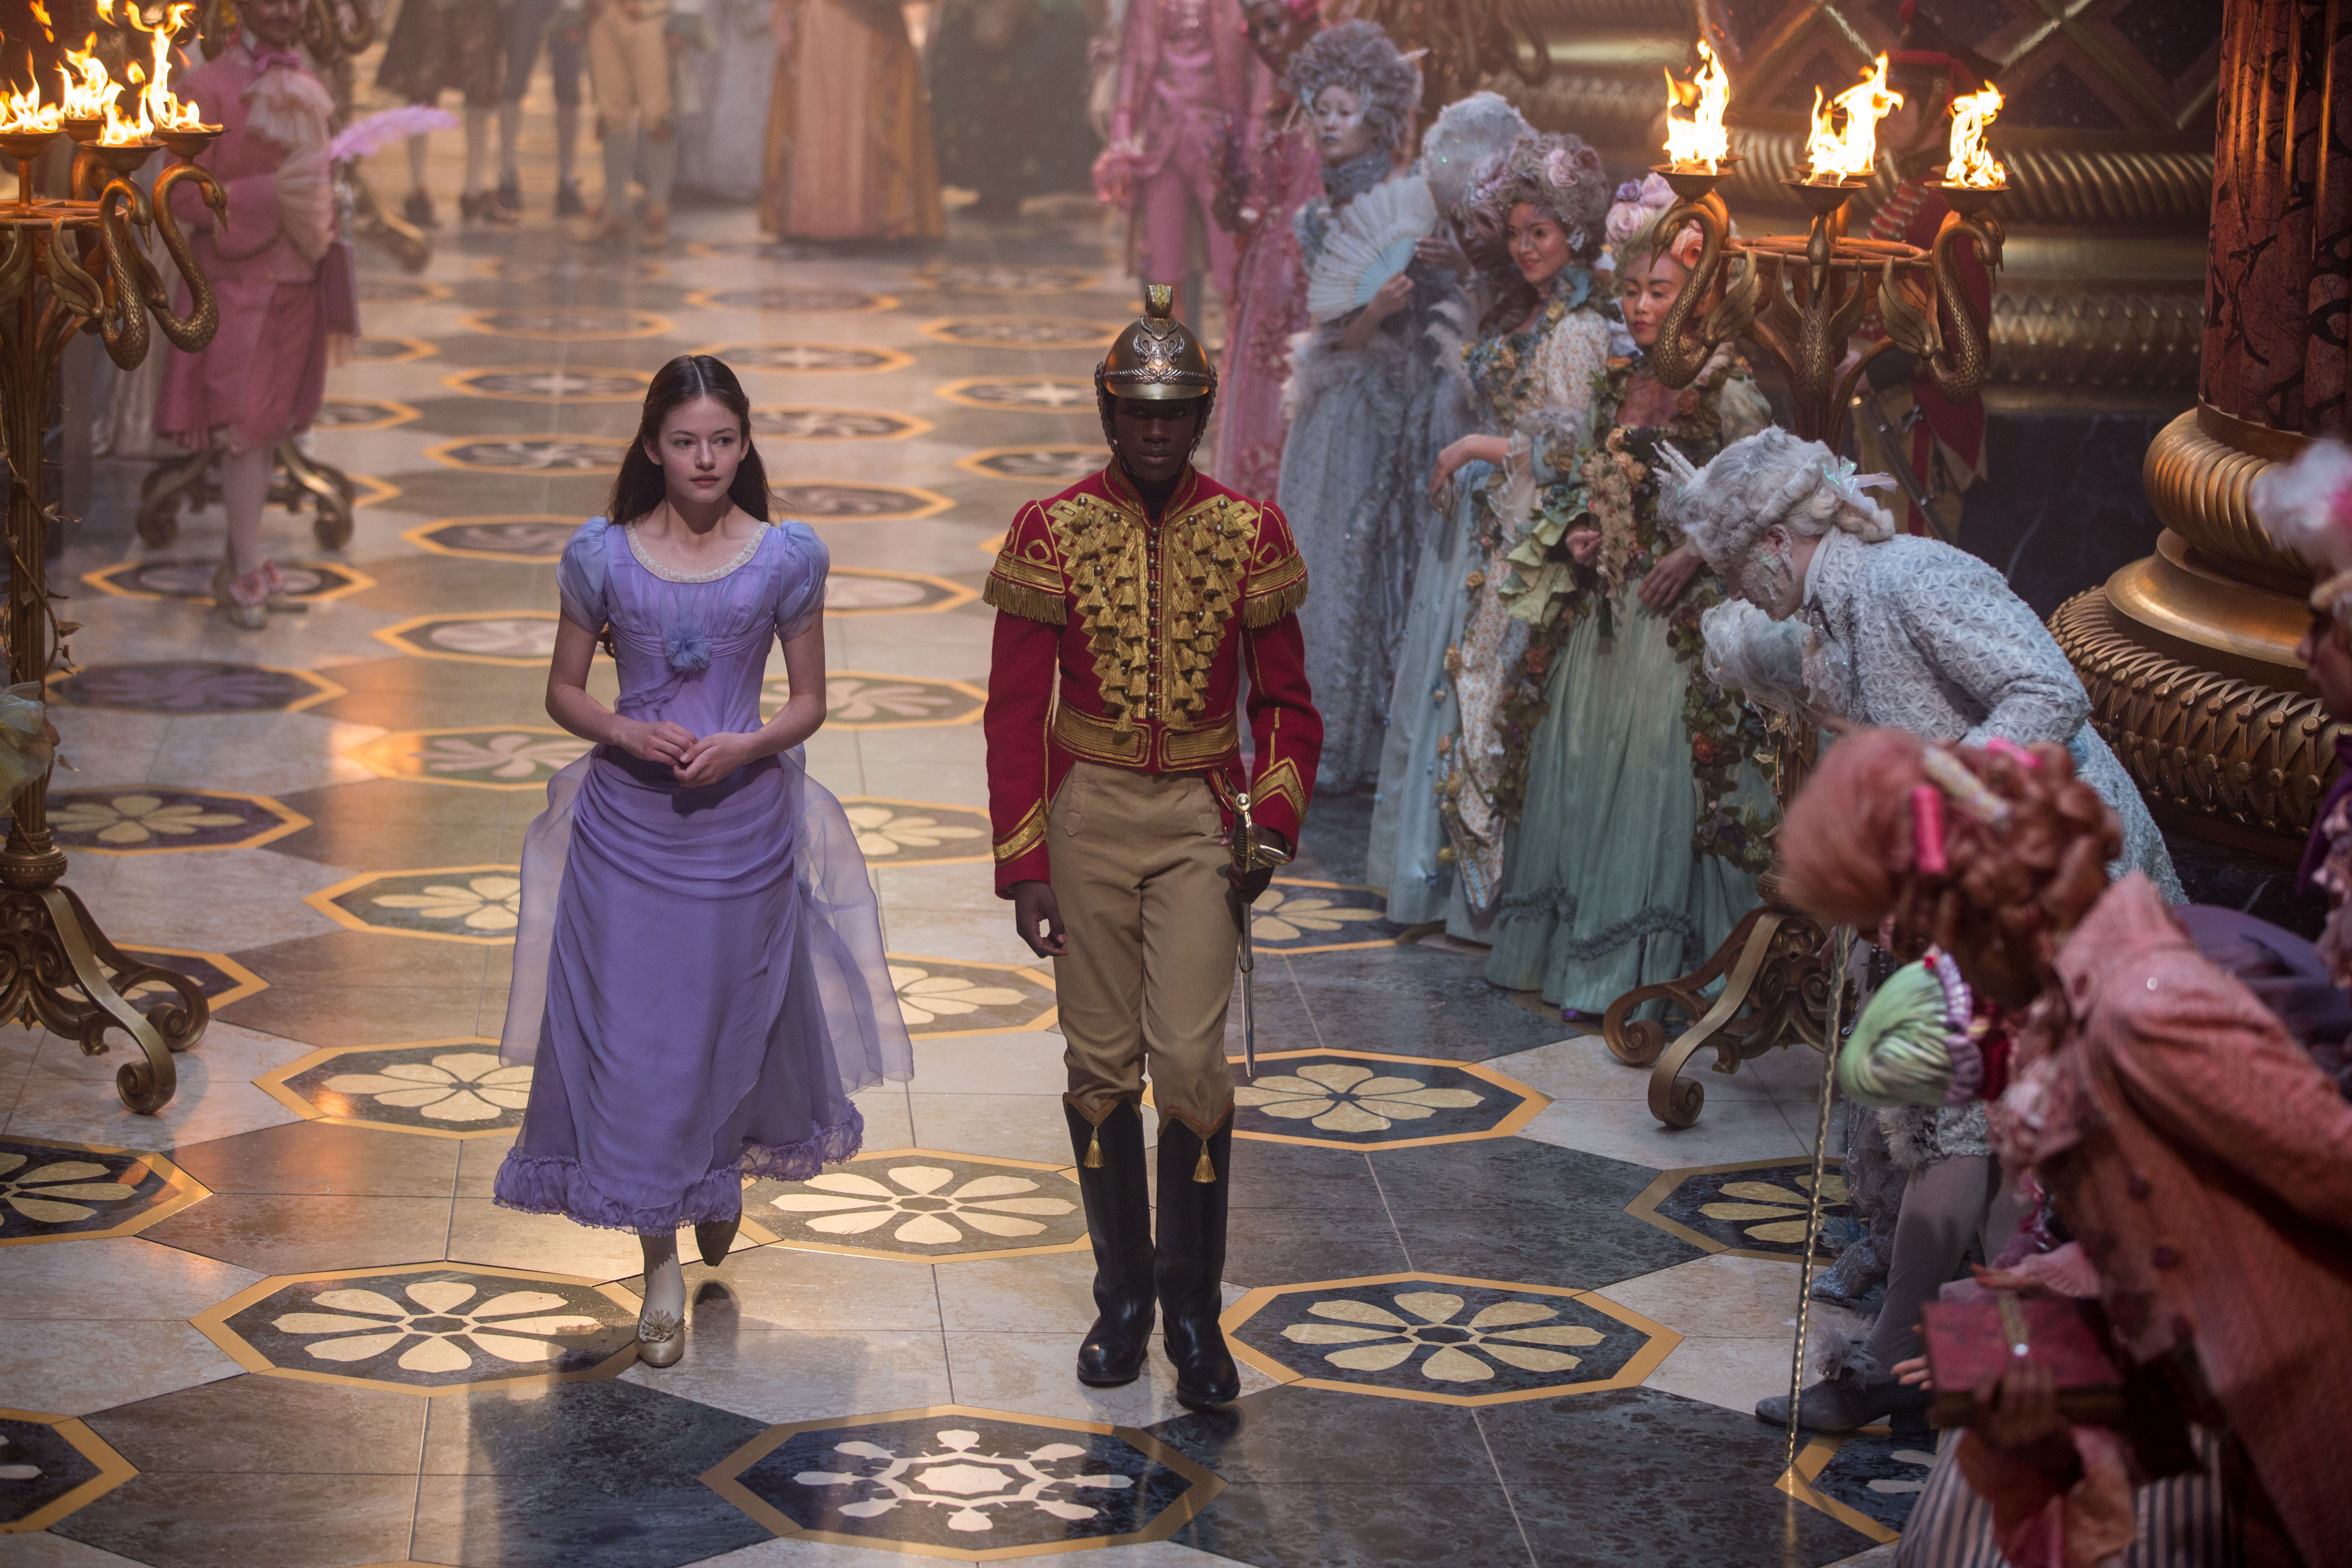 Disney Releases The Nutcracker and the Four Realms Teaser and Images